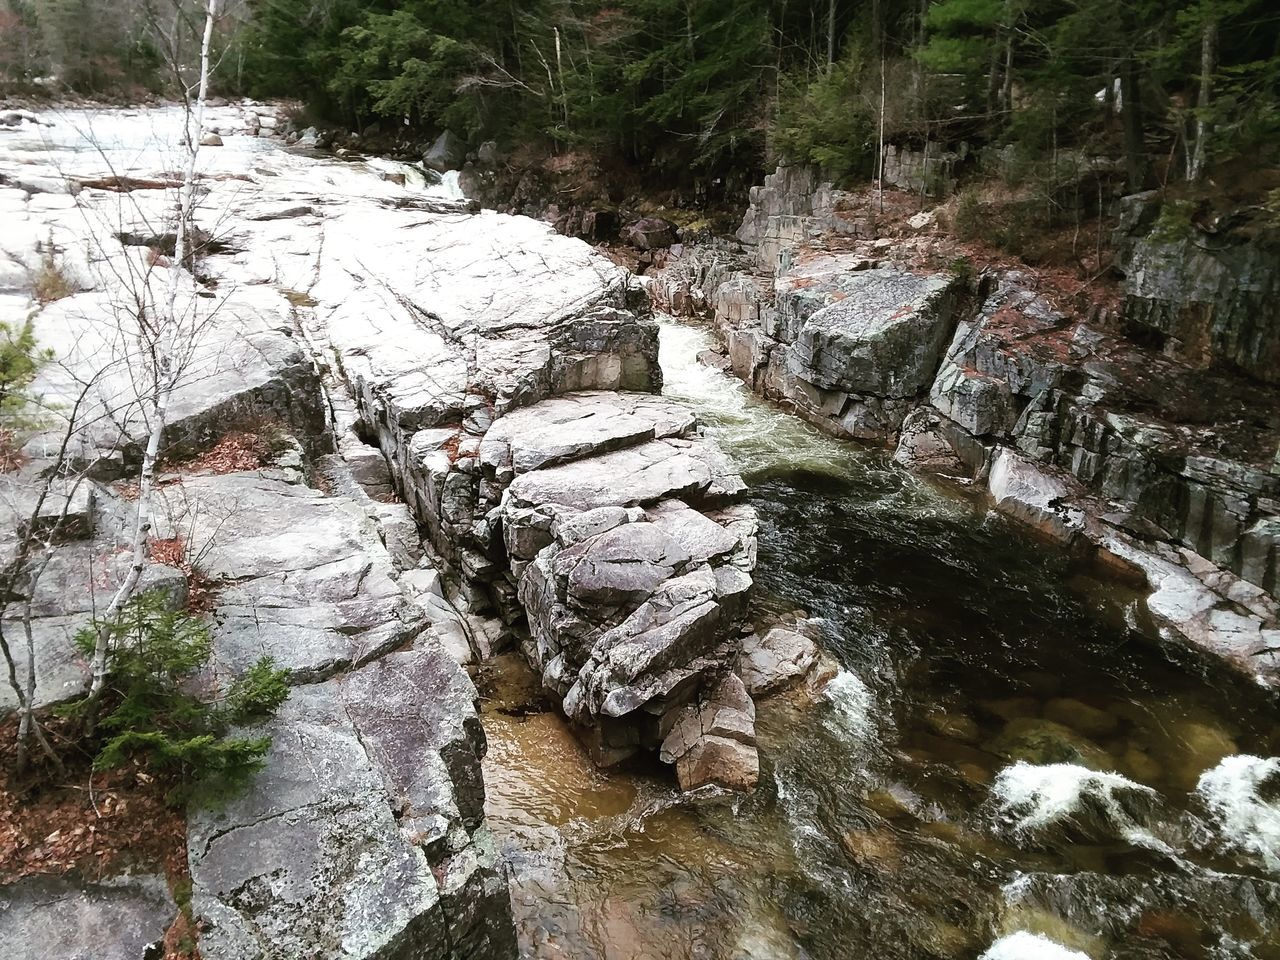 River Amidst Rock Formation